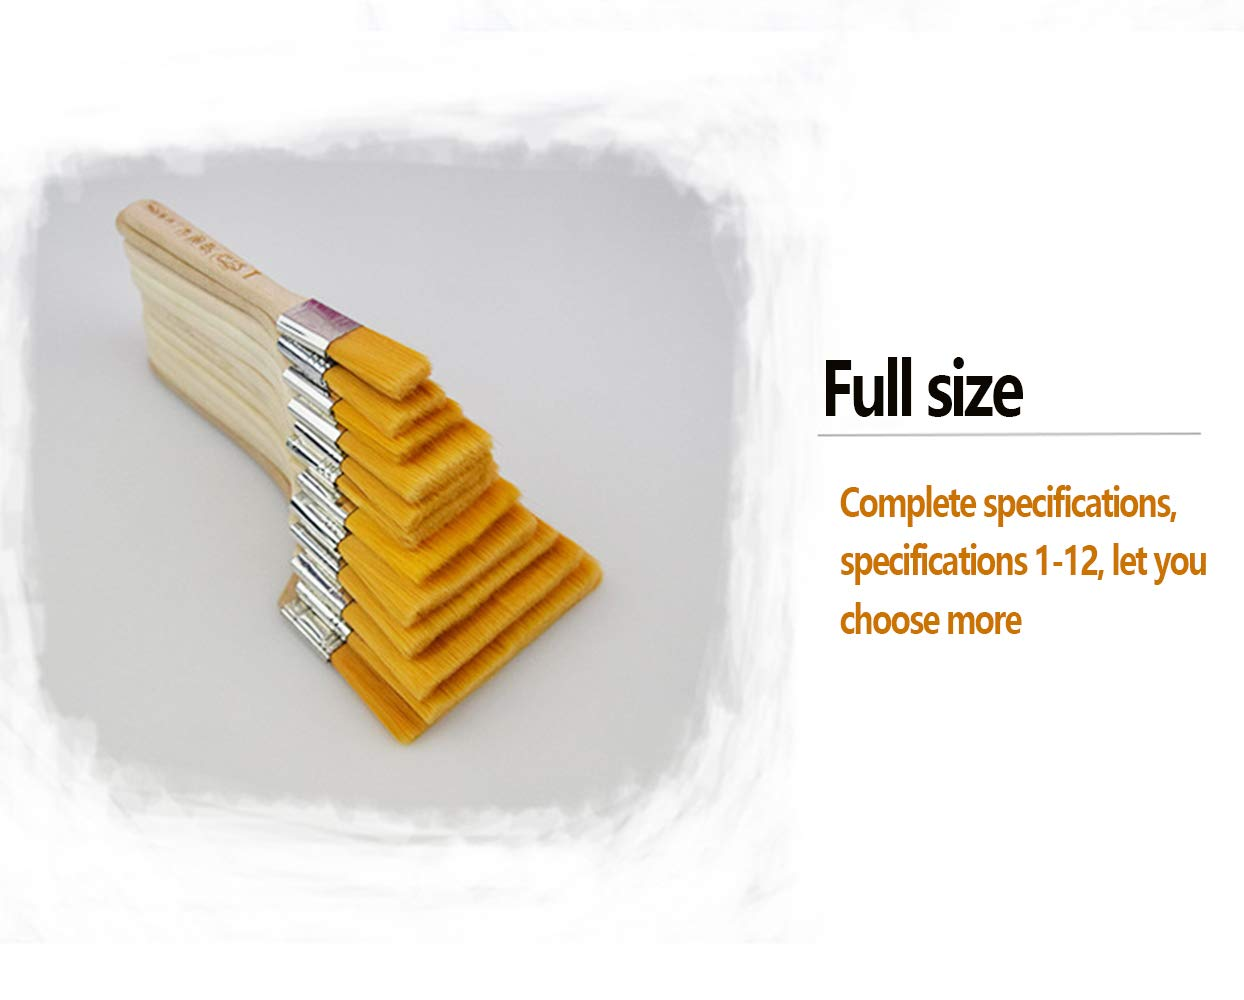 for Paint,Stain,Varnish Gesso DXIA 12pcs Paint Brush Set Profession Primer Glue Different Sizes Low Cost Paint Brushes or Chip Brush with Wooden Handle